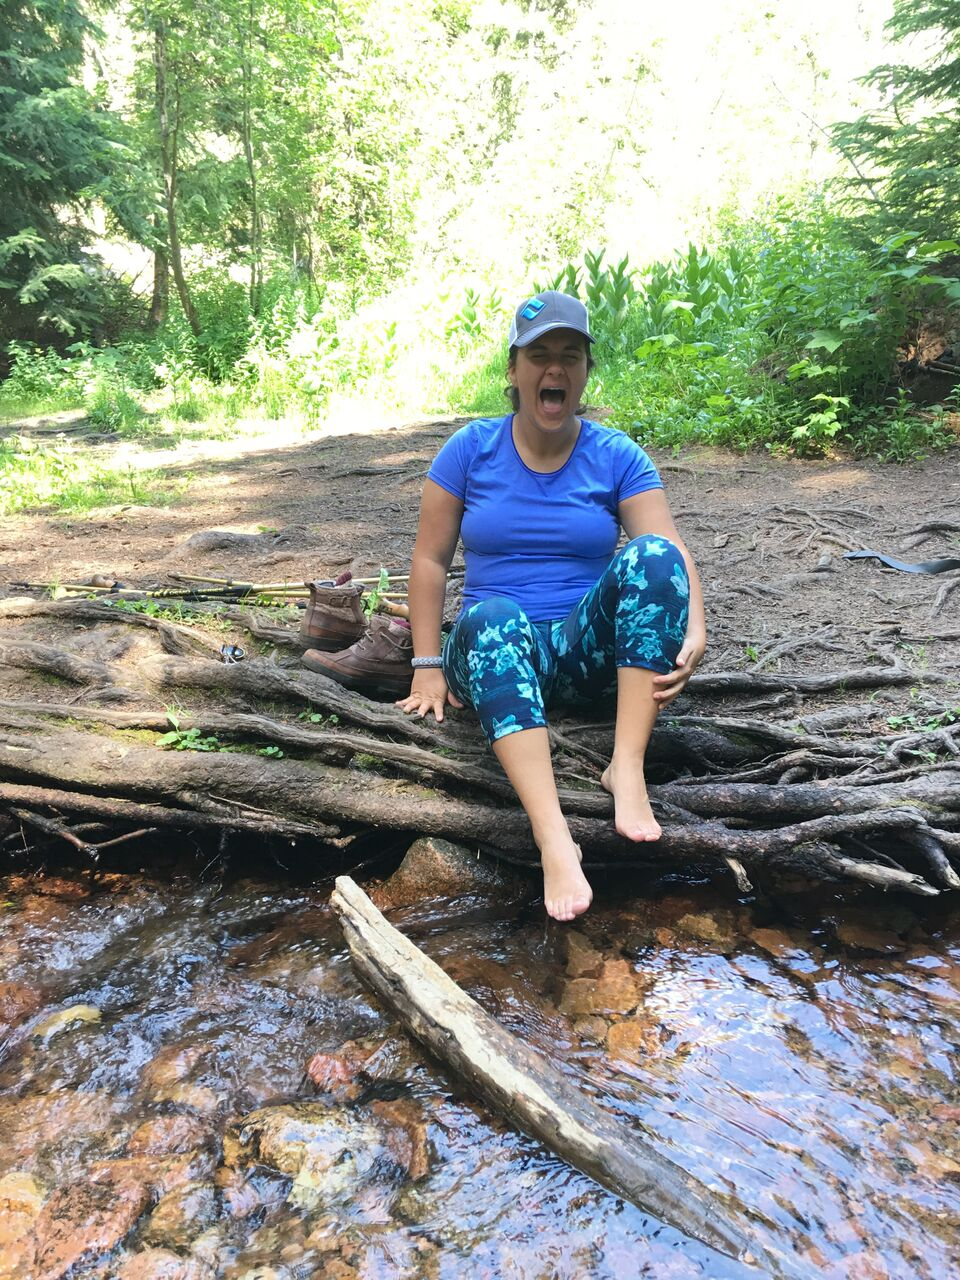 Dipping toes into the cold streams during our Vail family vacation